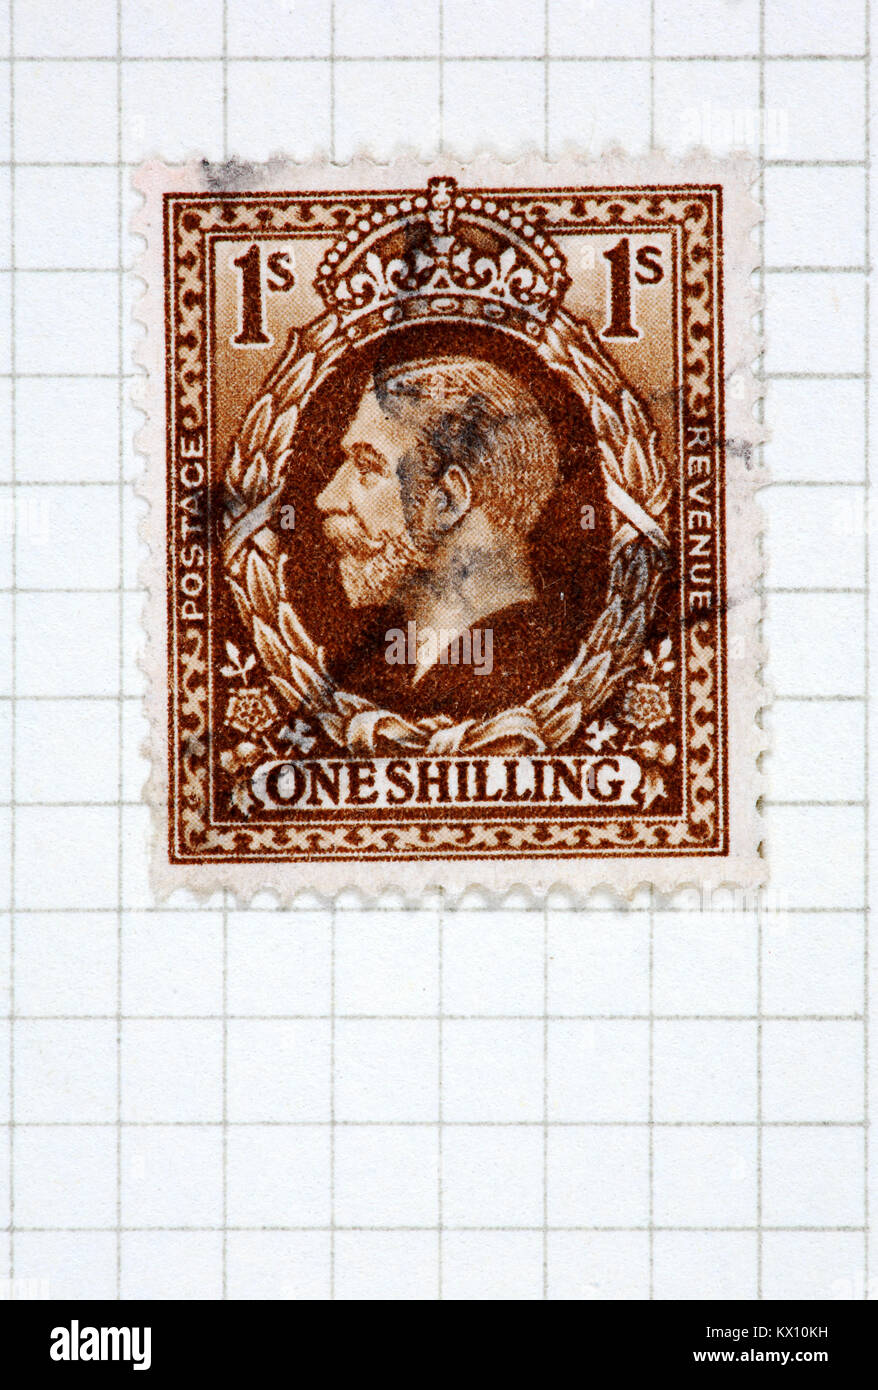 Revenue Stamps Stock Photos Revenue Stamps Stock Images Alamy